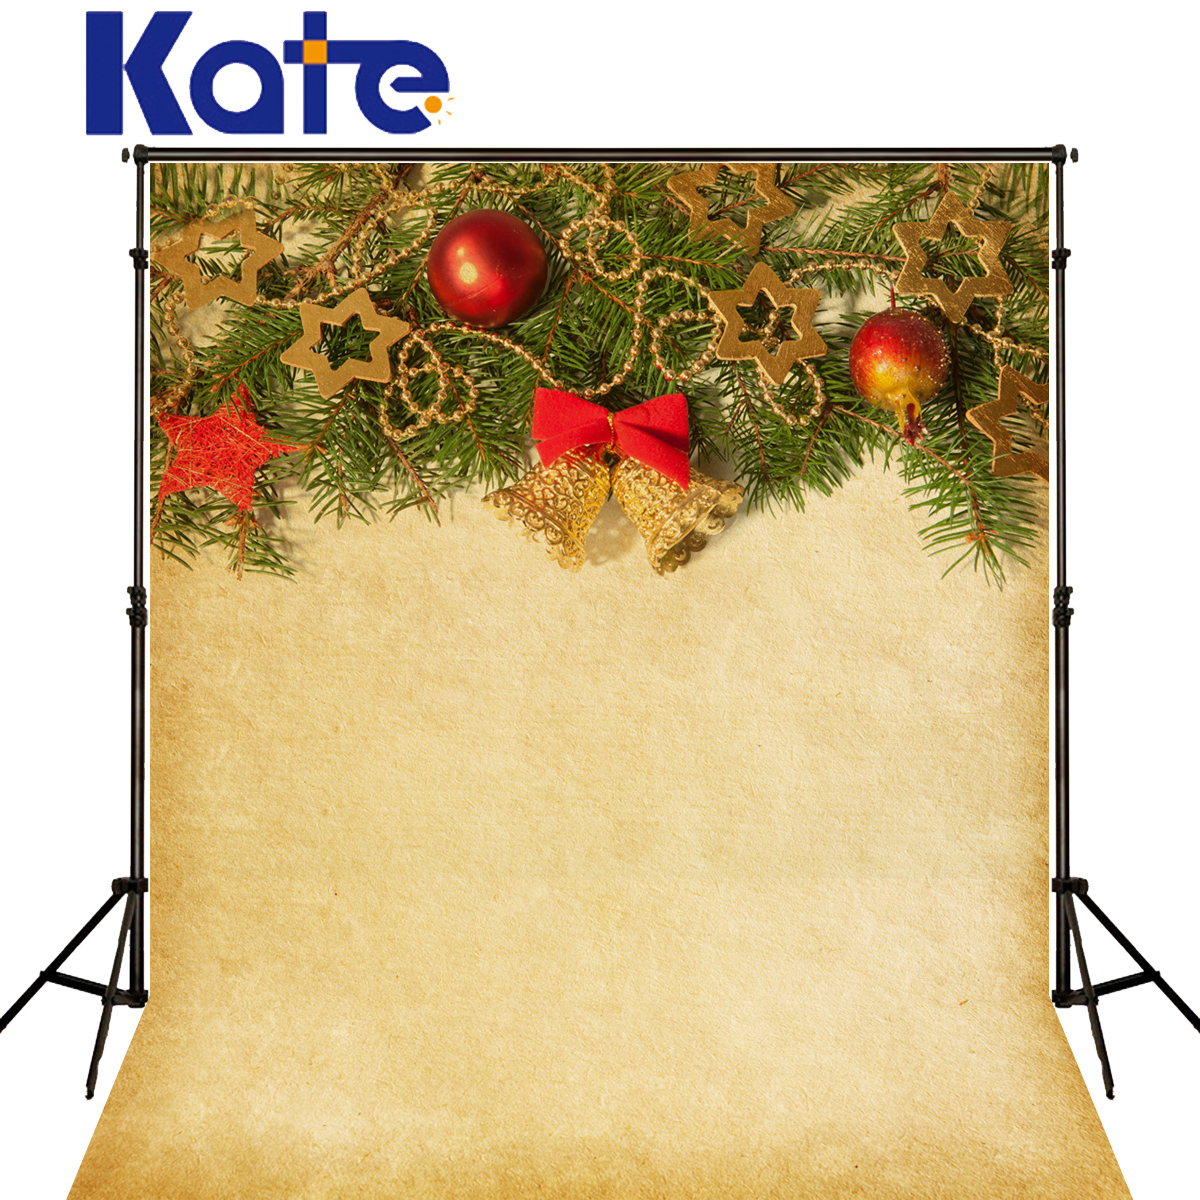 Kate Christmas Backgrounds Photography Red Ball Gold Star Bell Fondo Fotografico De Estudio Solid Yellow Backdrops For Photo<br>